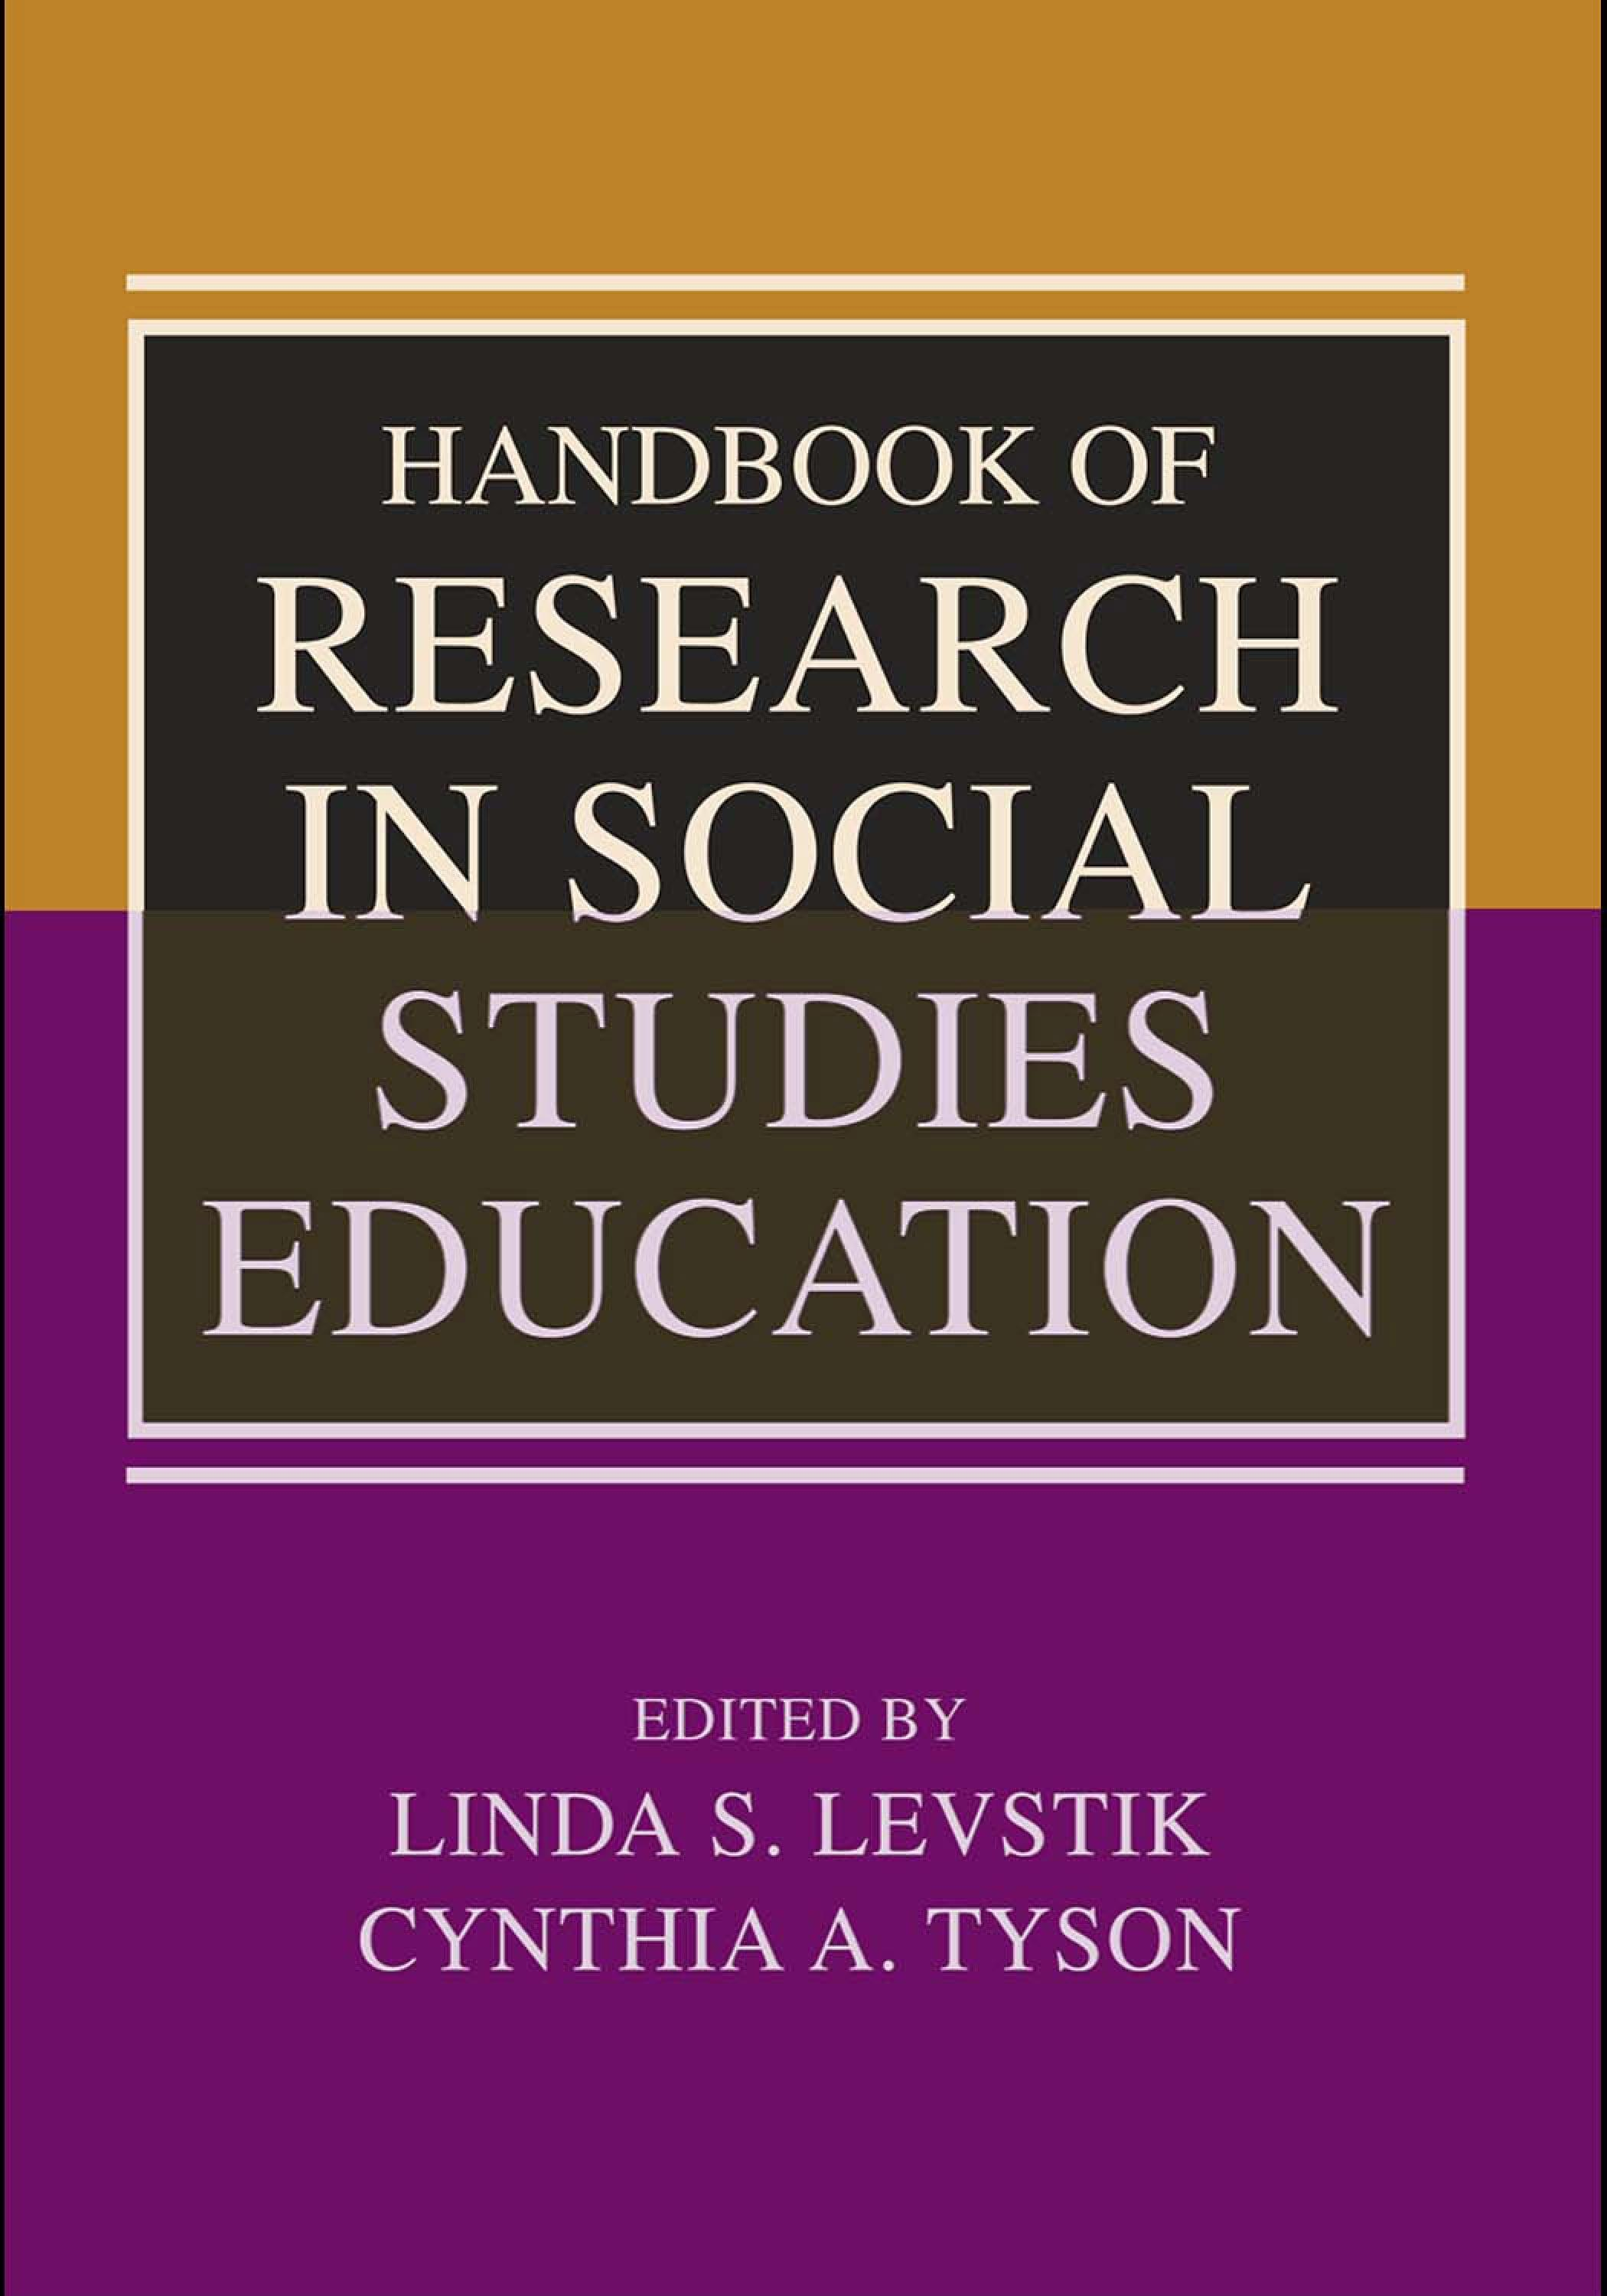 Handbook of Research in Social Studies Education EB9780203930229